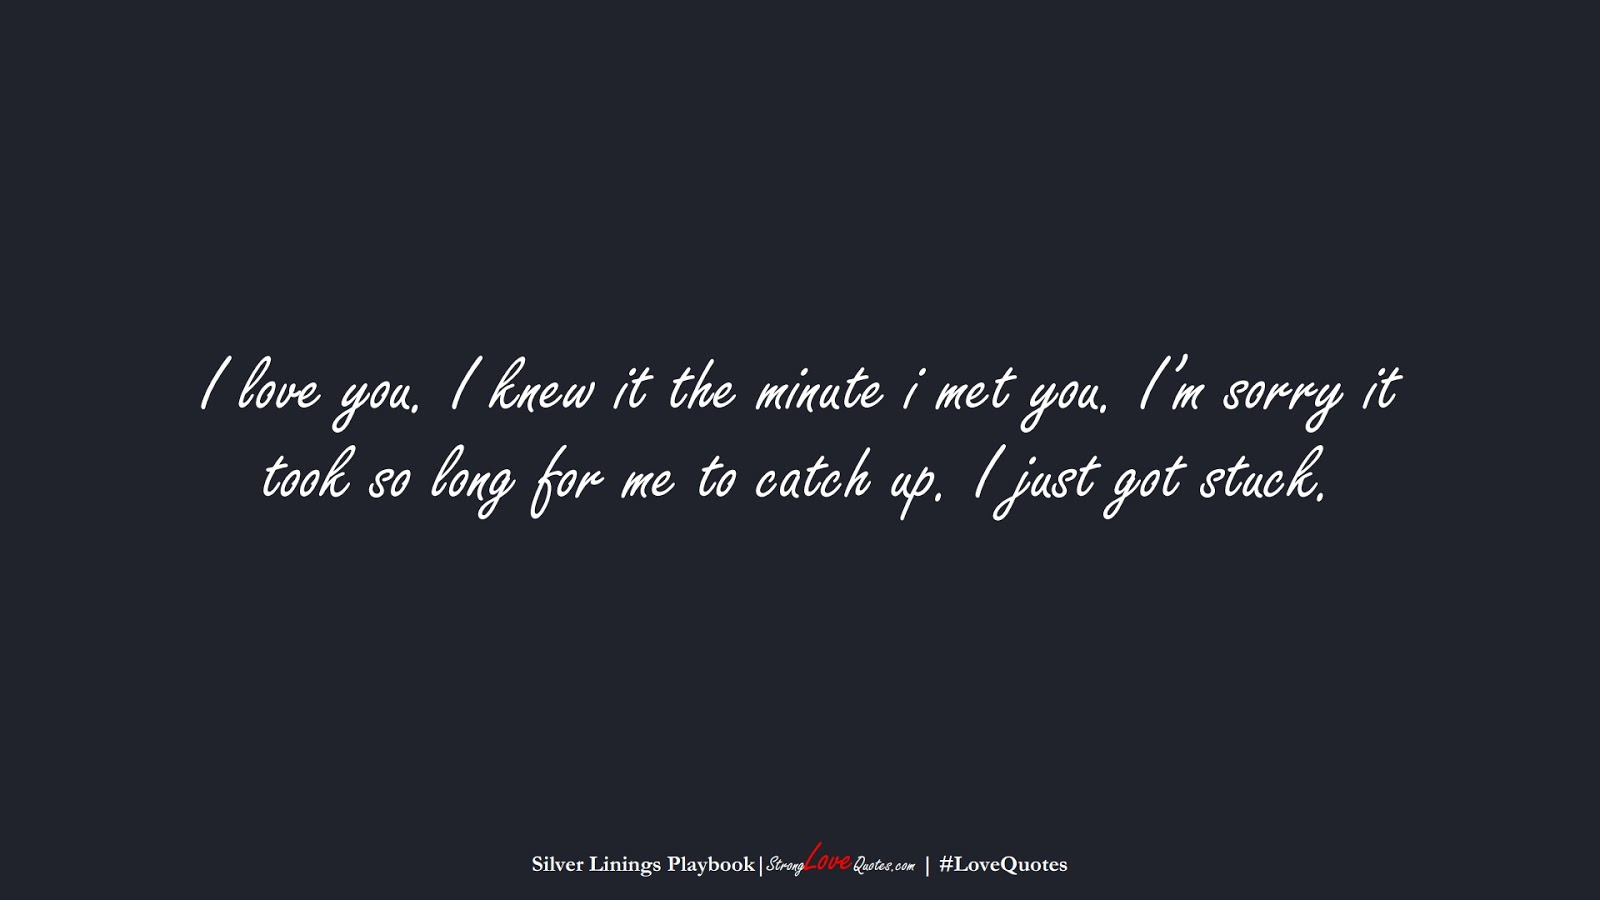 I love you. I knew it the minute i met you. I'm sorry it took so long for me to catch up. I just got stuck. (Silver Linings Playbook);  #LoveQuotes